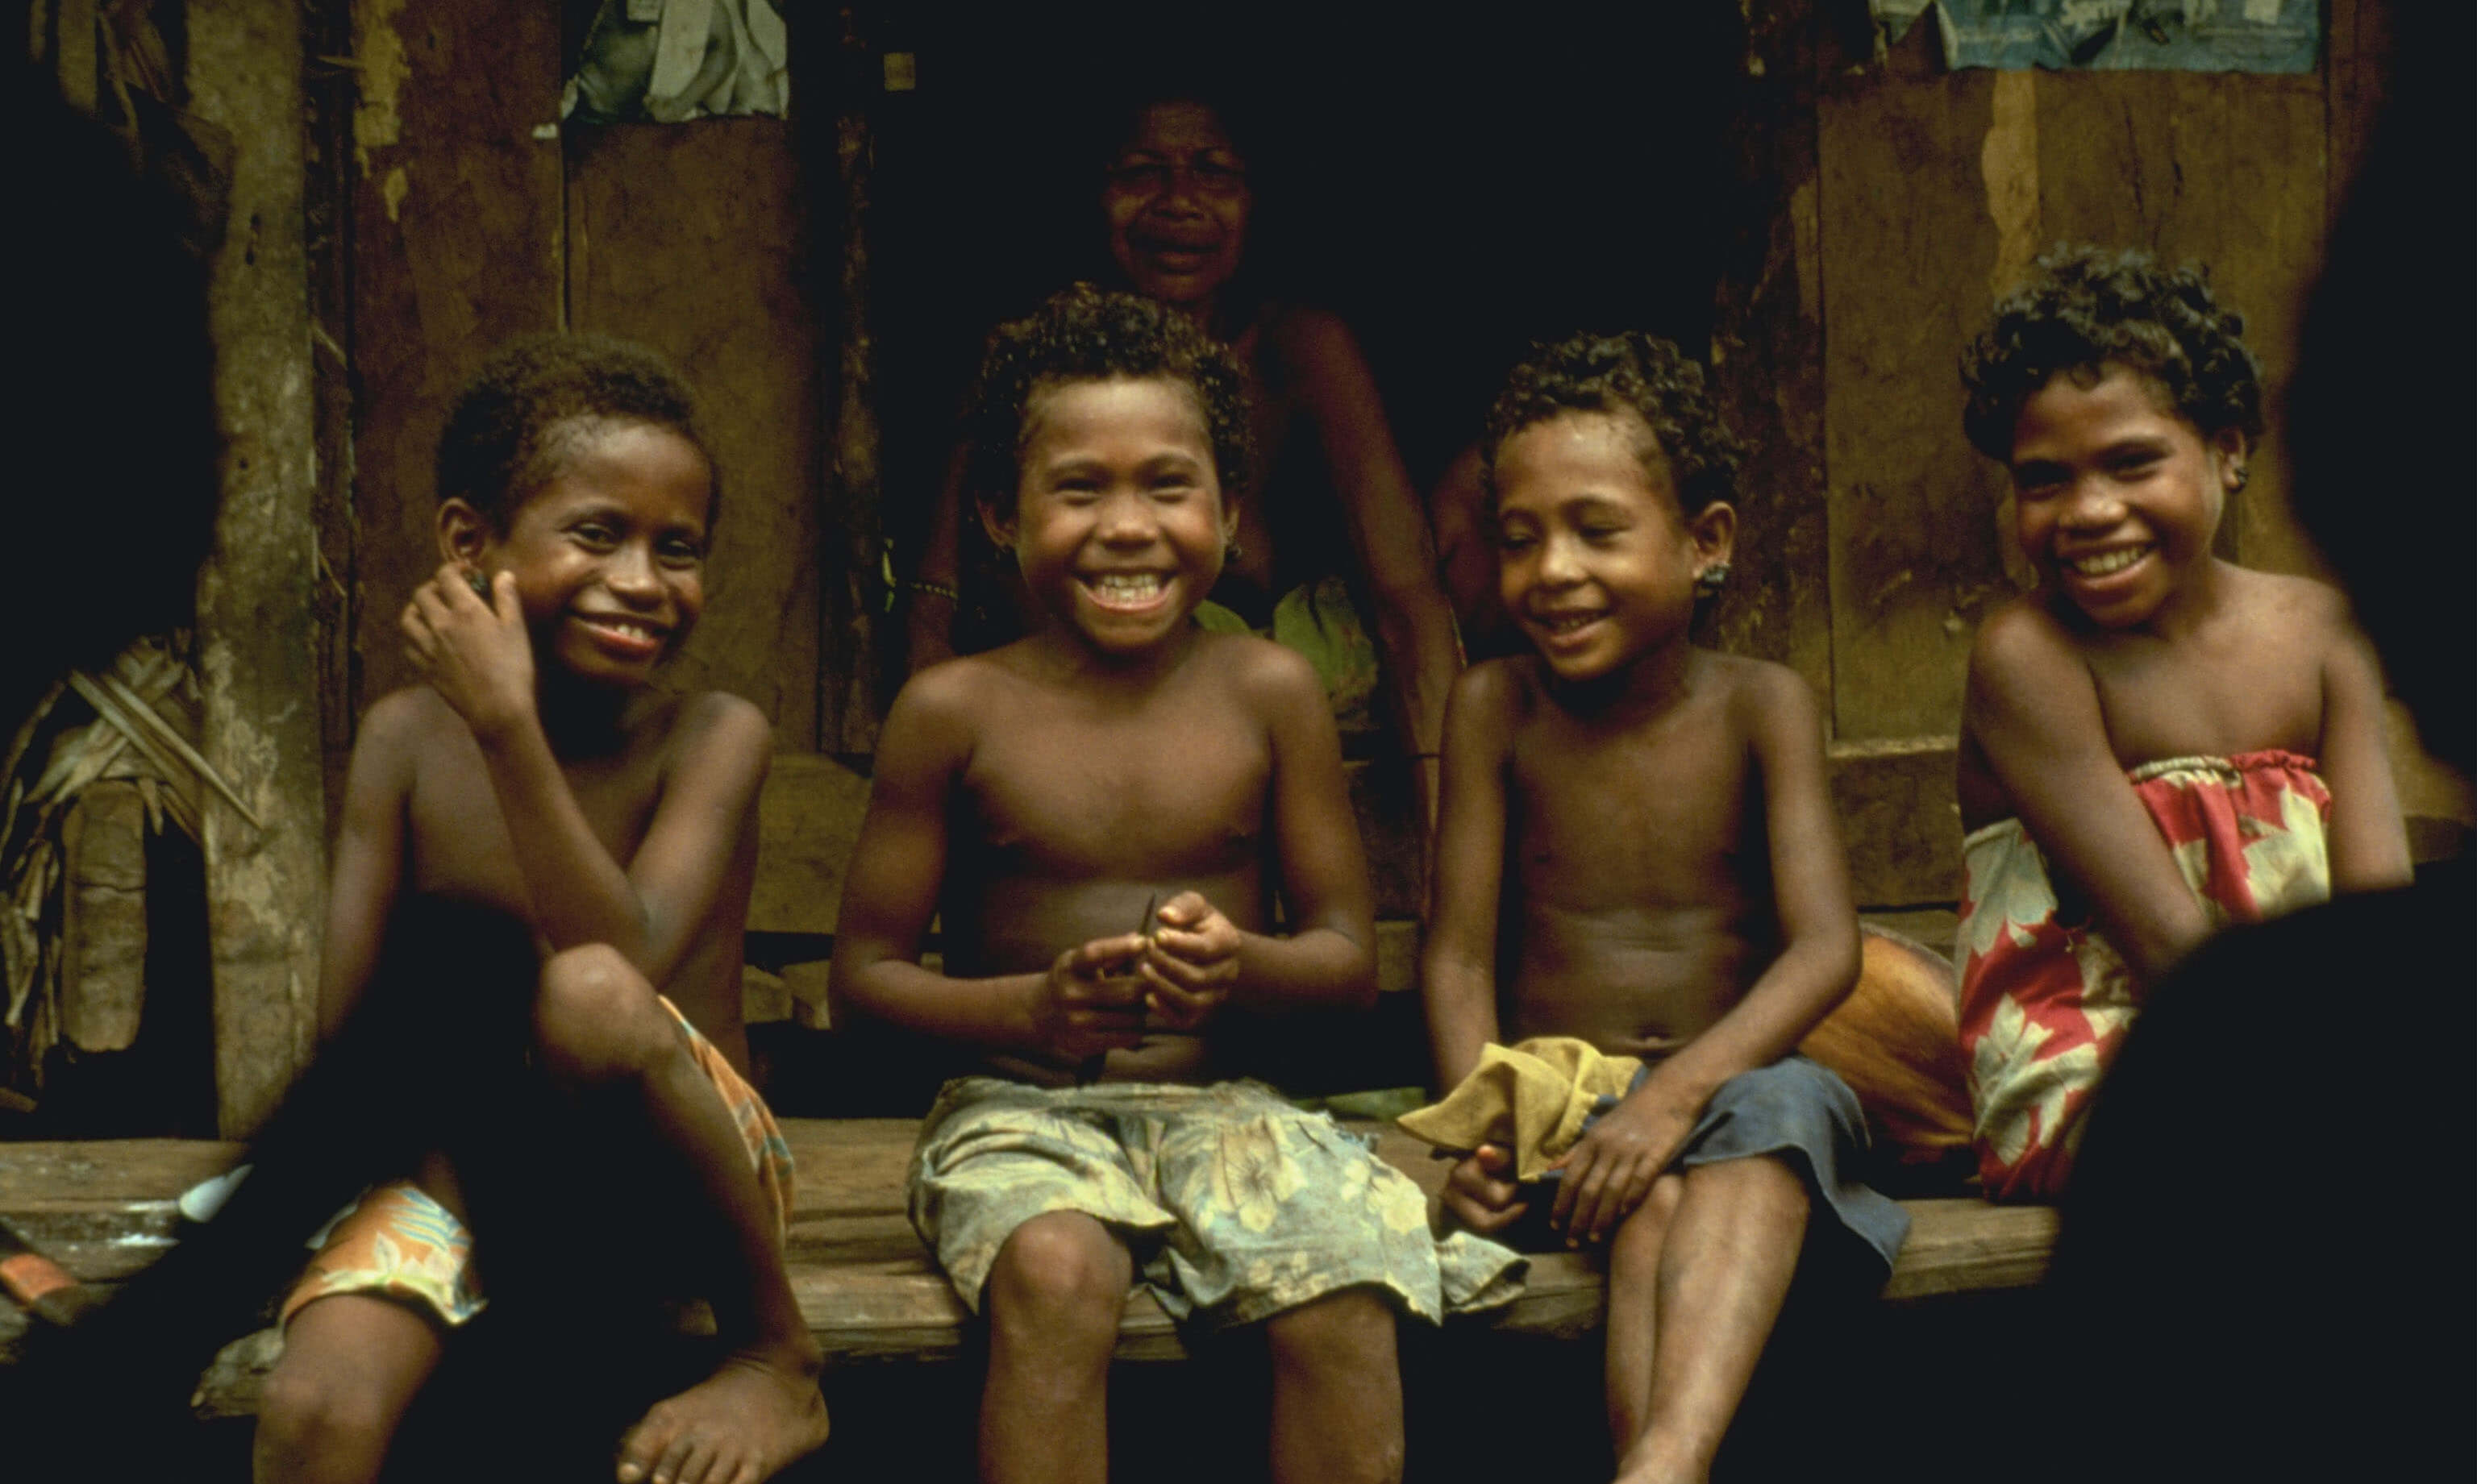 Papua New Guinean Boys